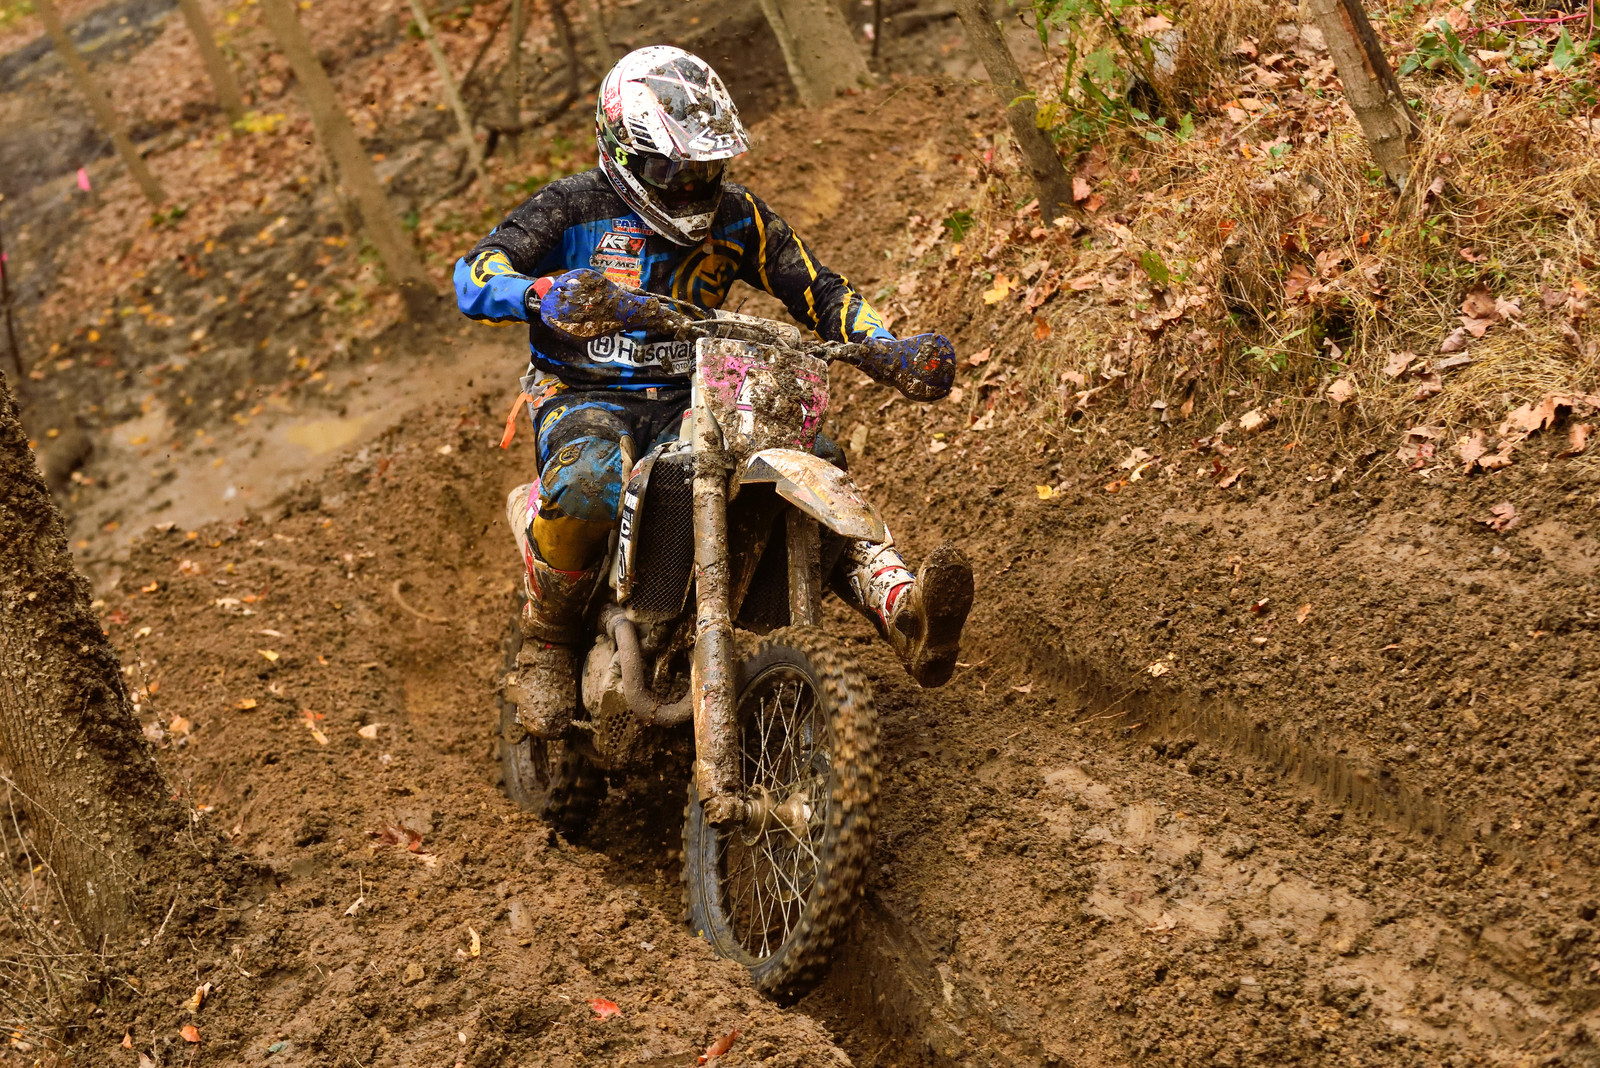 Thad Duvall - Ironman GNCC - Motocross Pictures - Vital MX